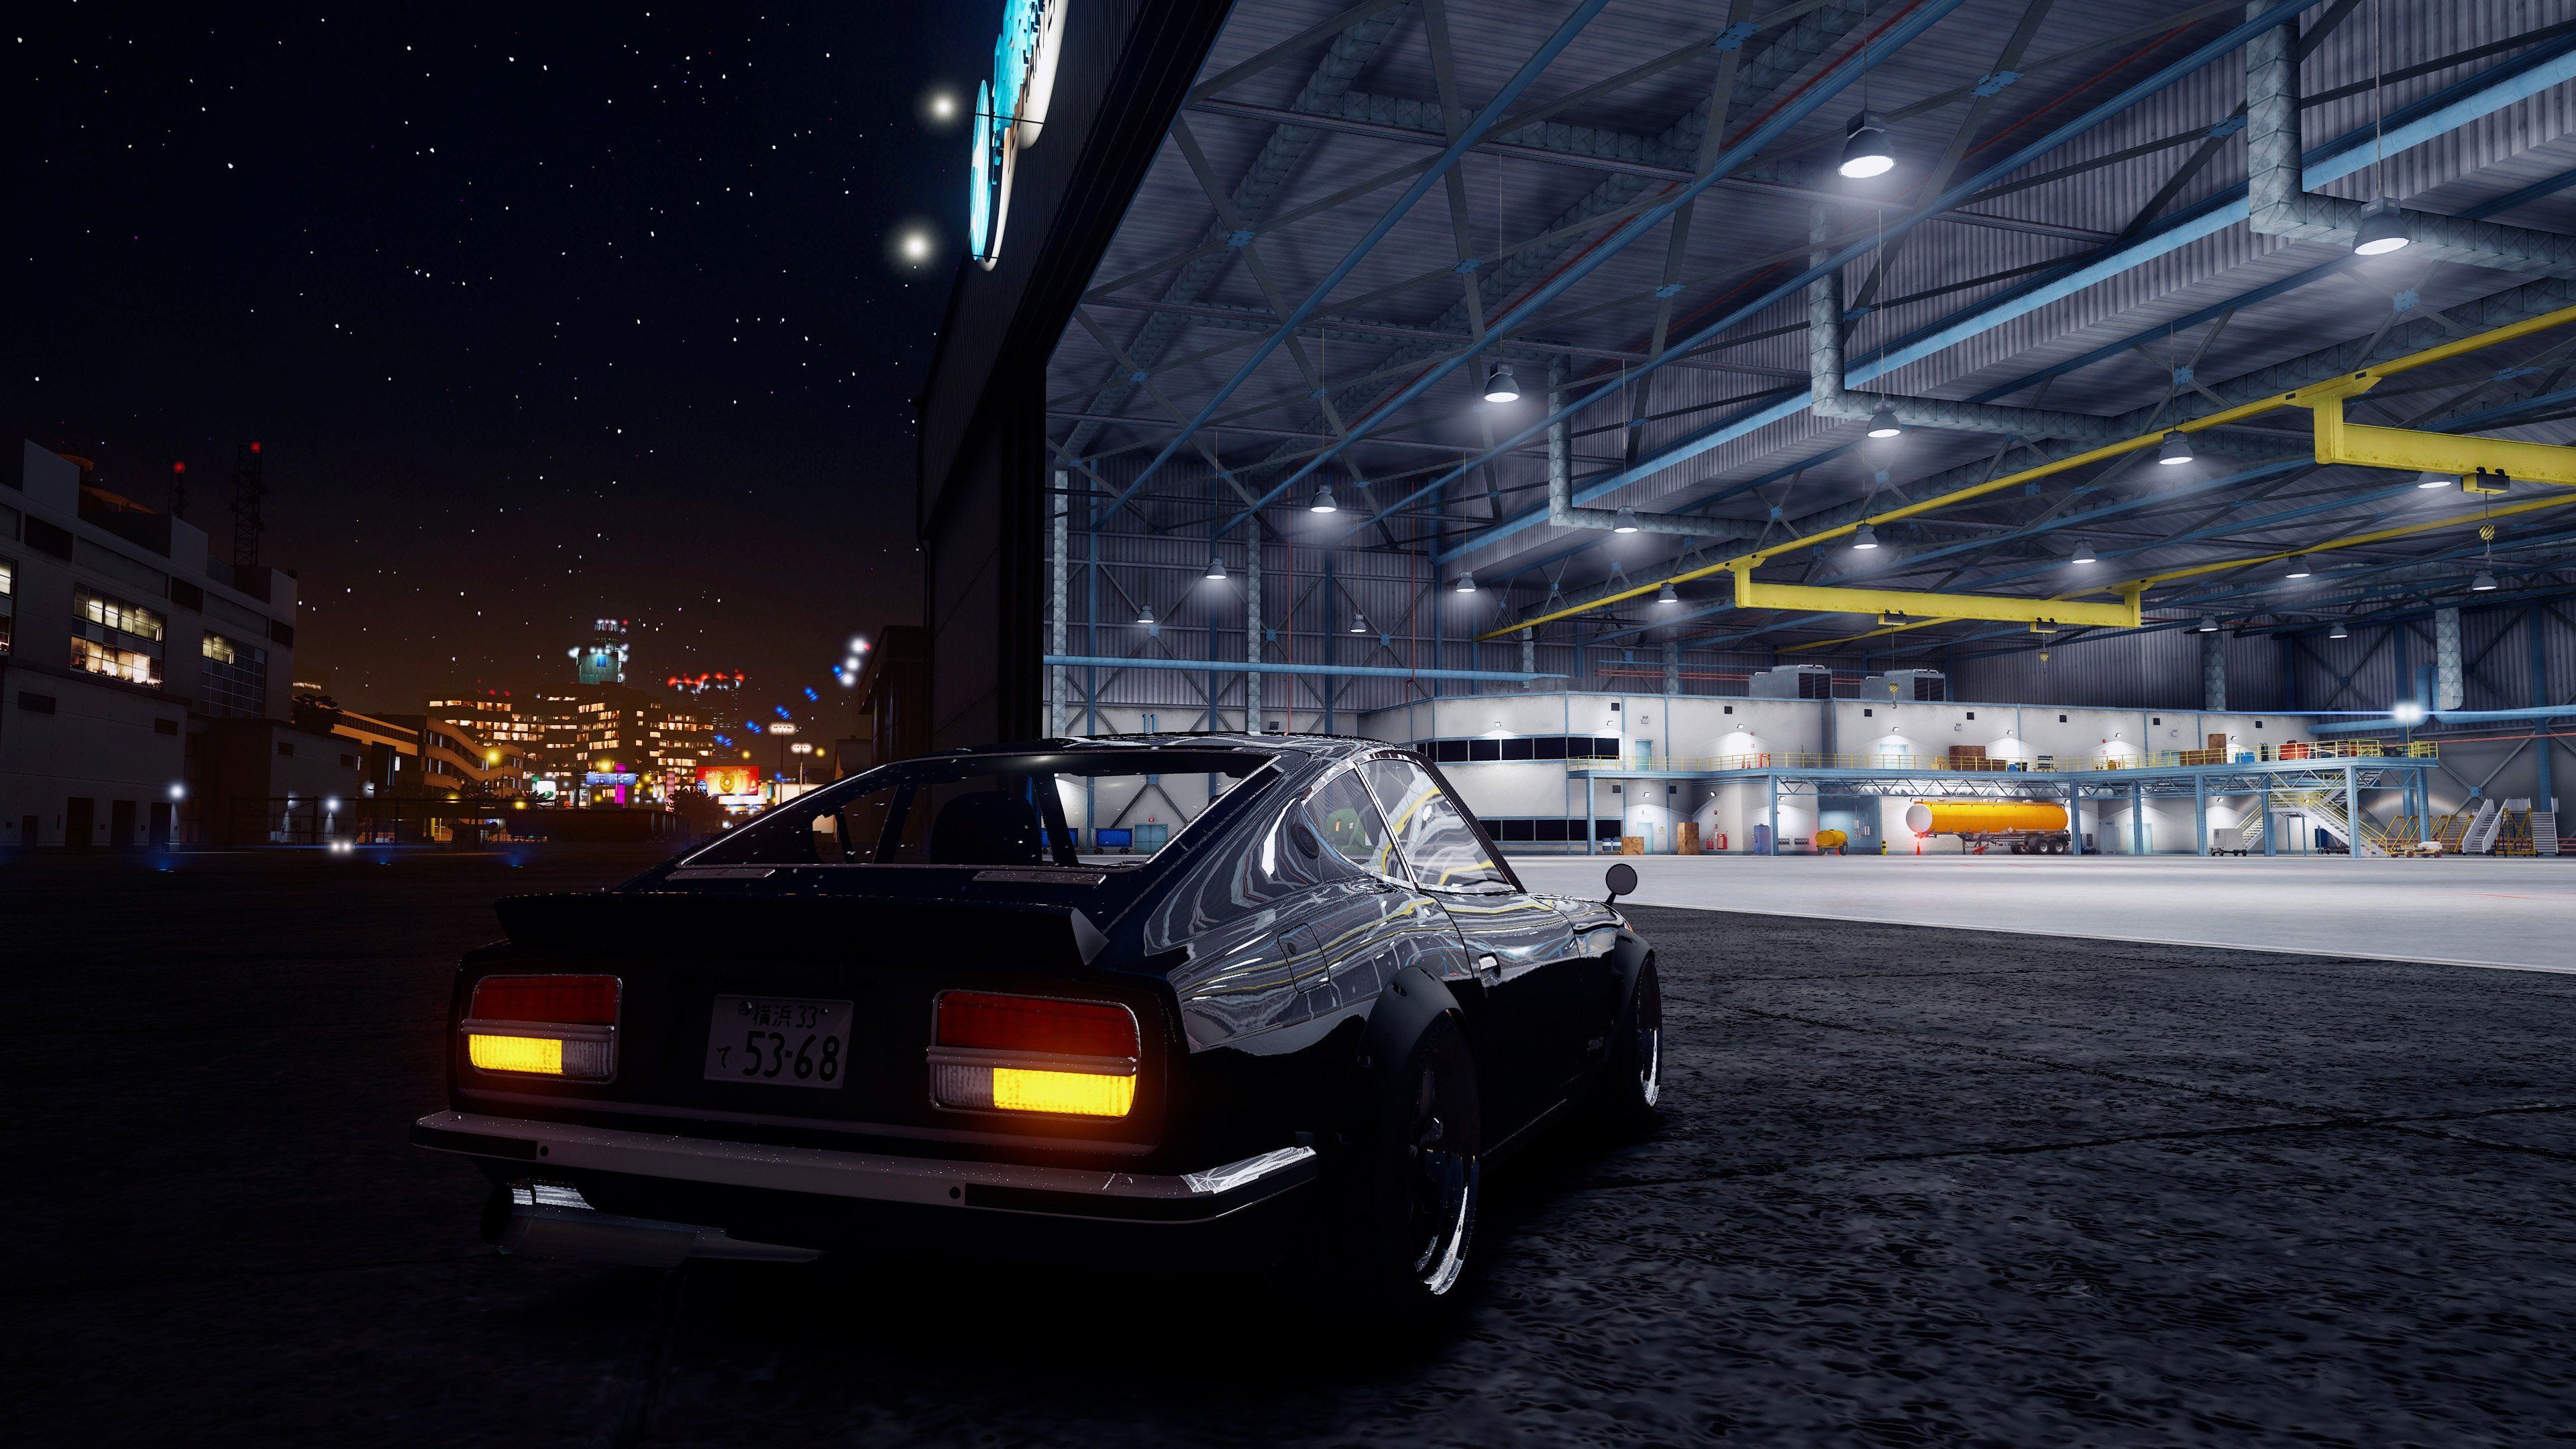 Download Wallpapers Gta5 Night Grand Theft Auto V 4k: 2880x1800 Grand Theft Auto V Mods Cars Macbook Pro Retina